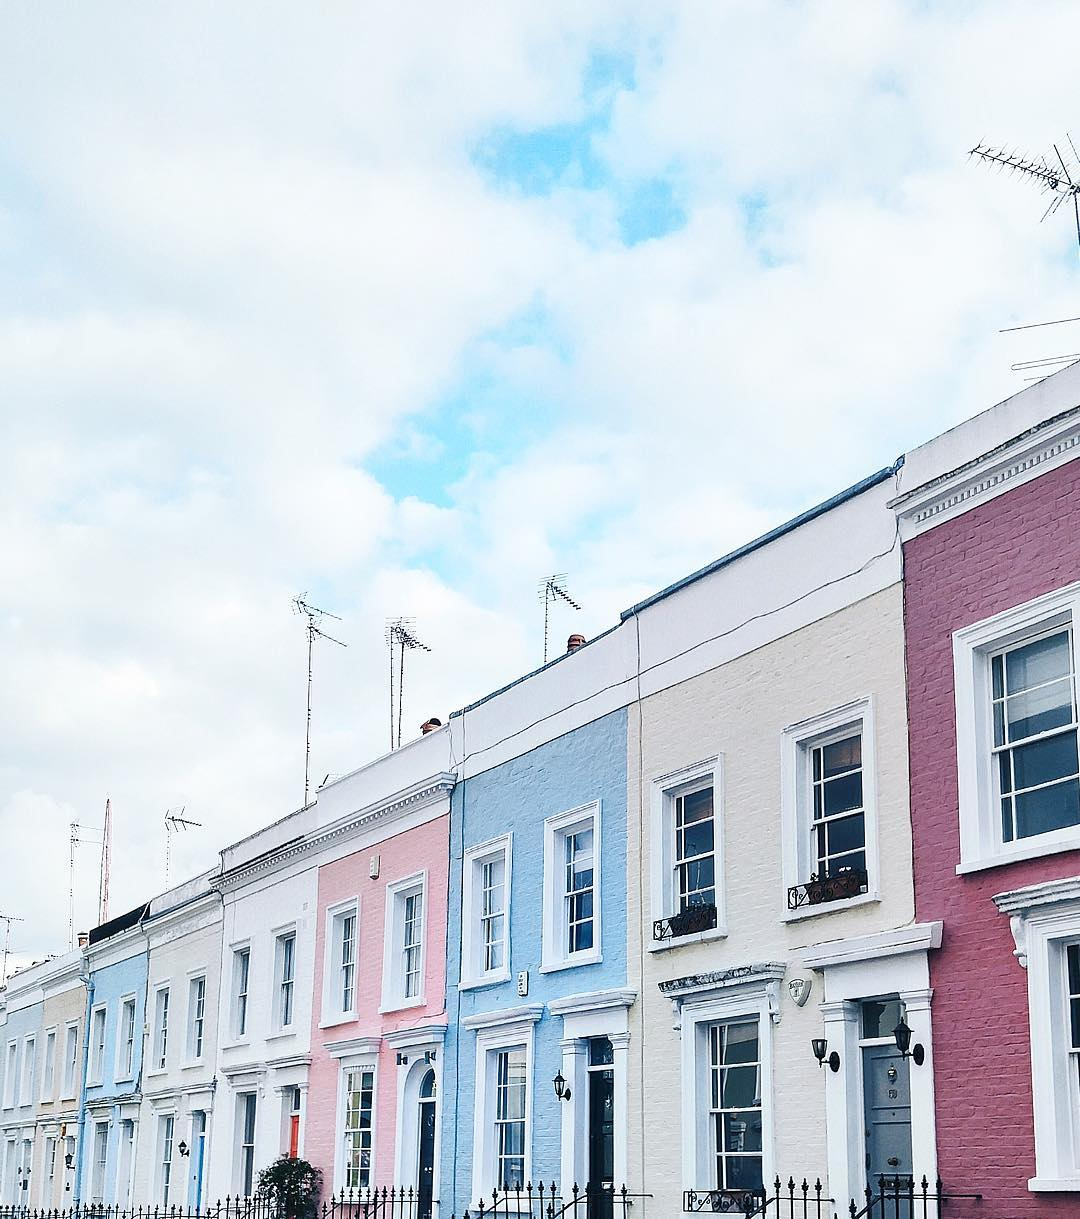 Best views of Notting Hill's famous pastel houses in London, United Kingdom